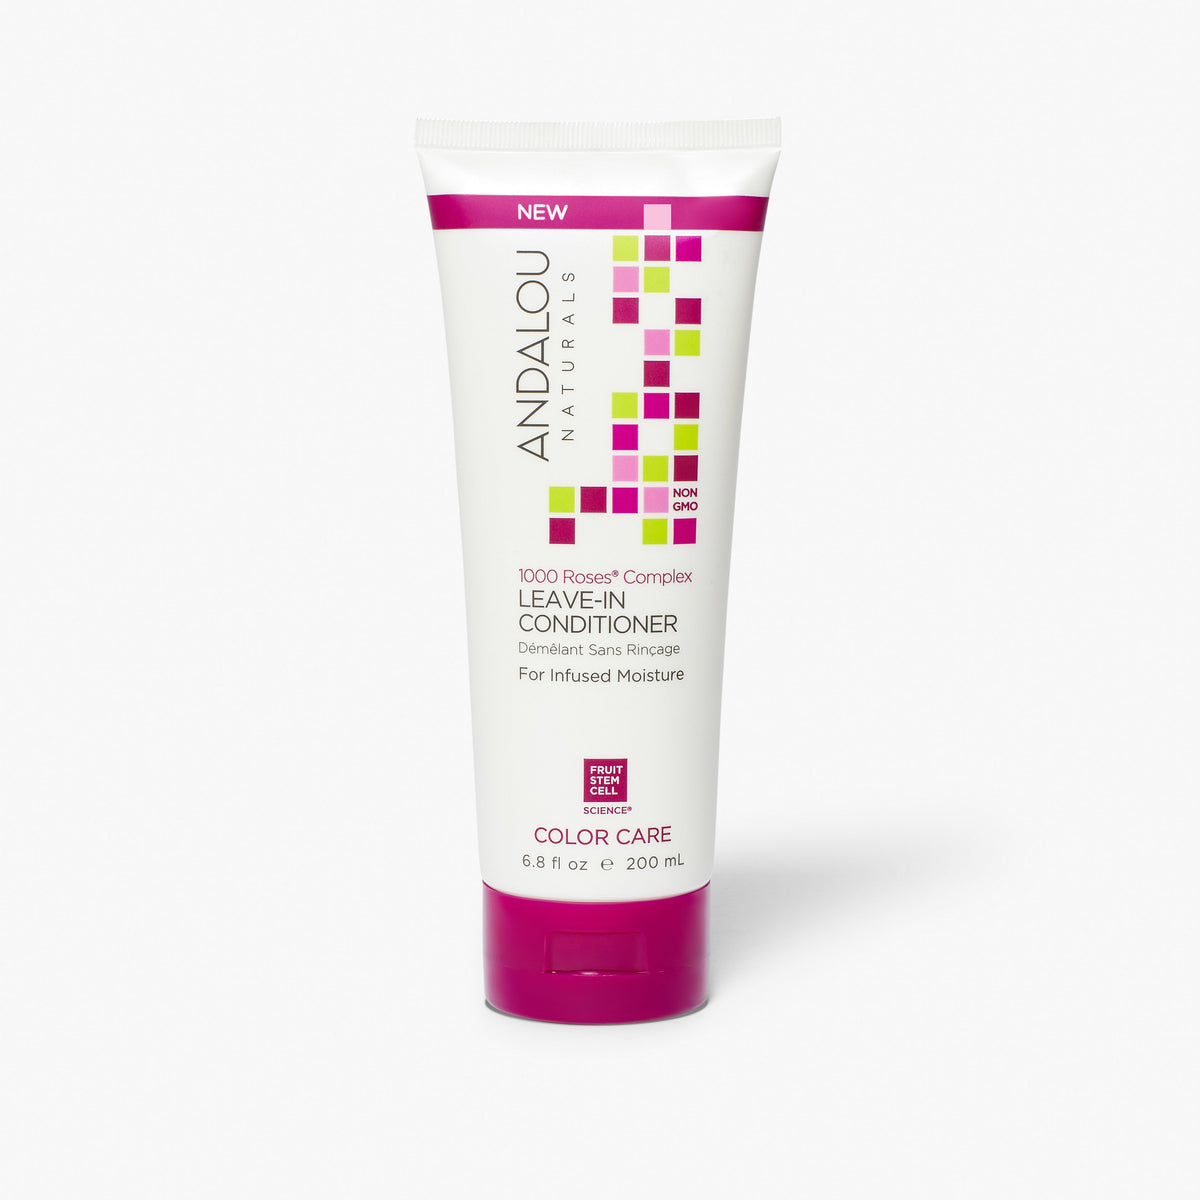 1000 Roses Complex Color Care Leave-In Conditioner - Andalou Naturals US